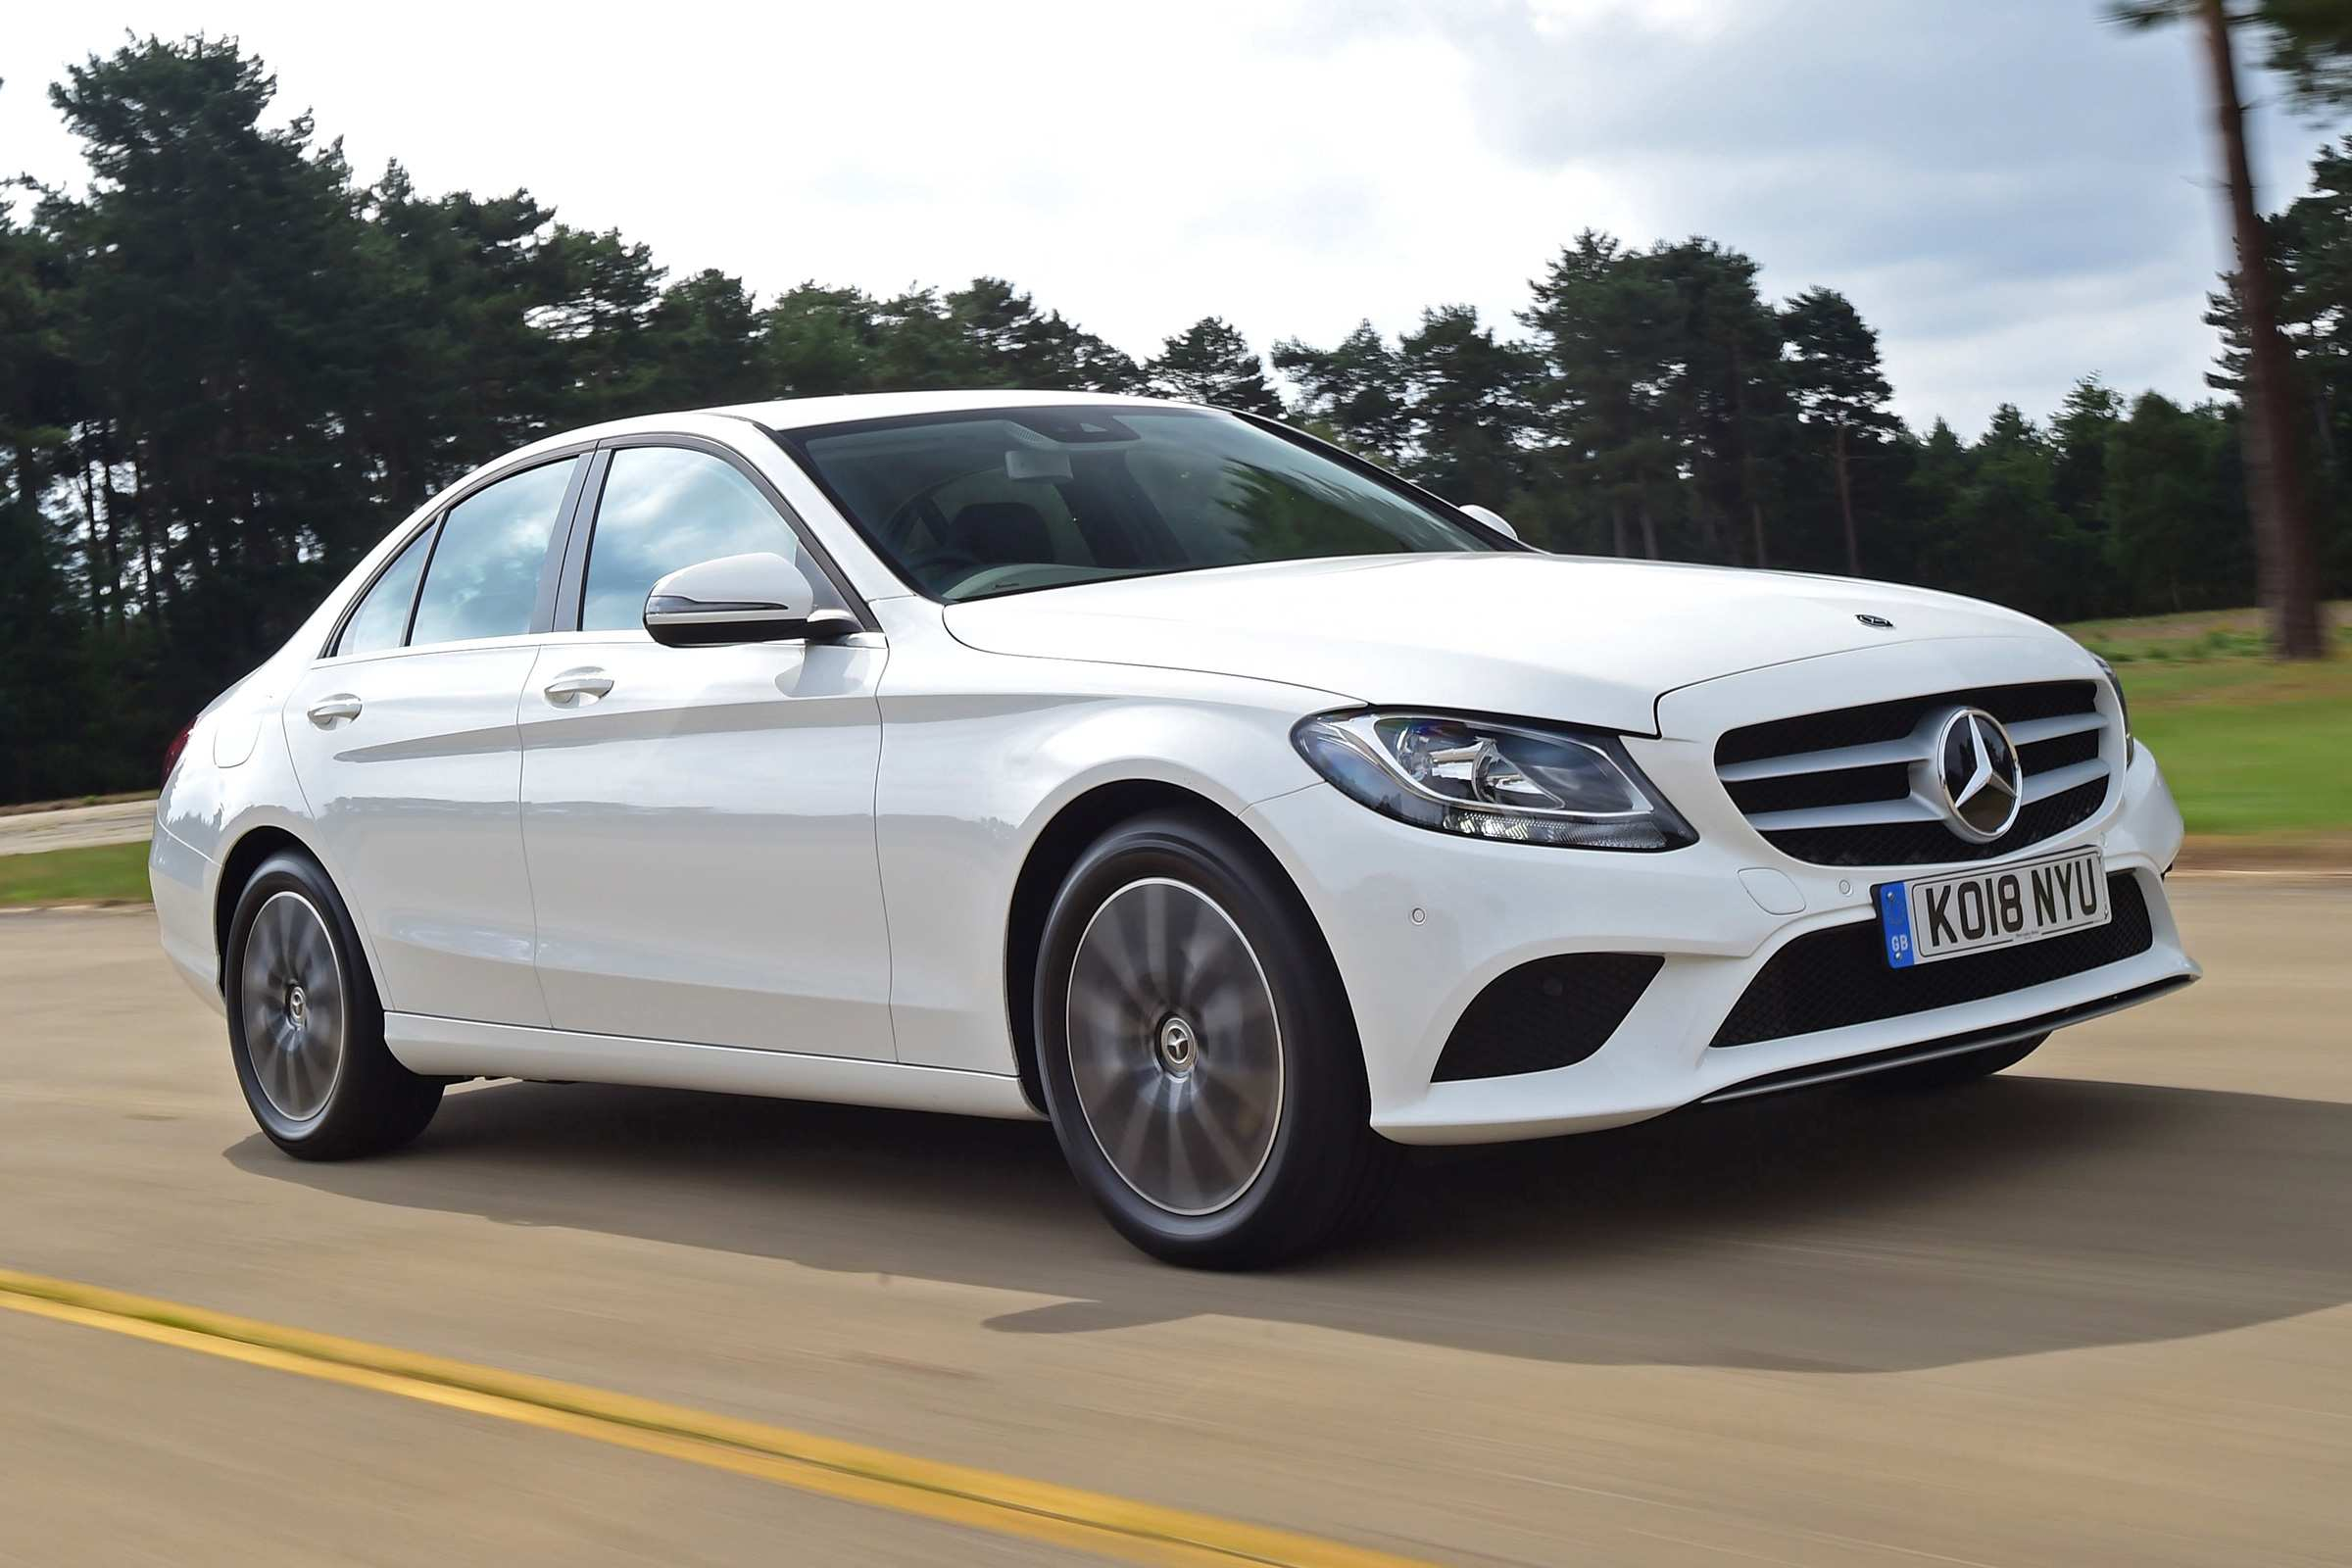 99 Great Best Mercedes C Class Hybrid 2019 Review And Price Rumors with Best Mercedes C Class Hybrid 2019 Review And Price